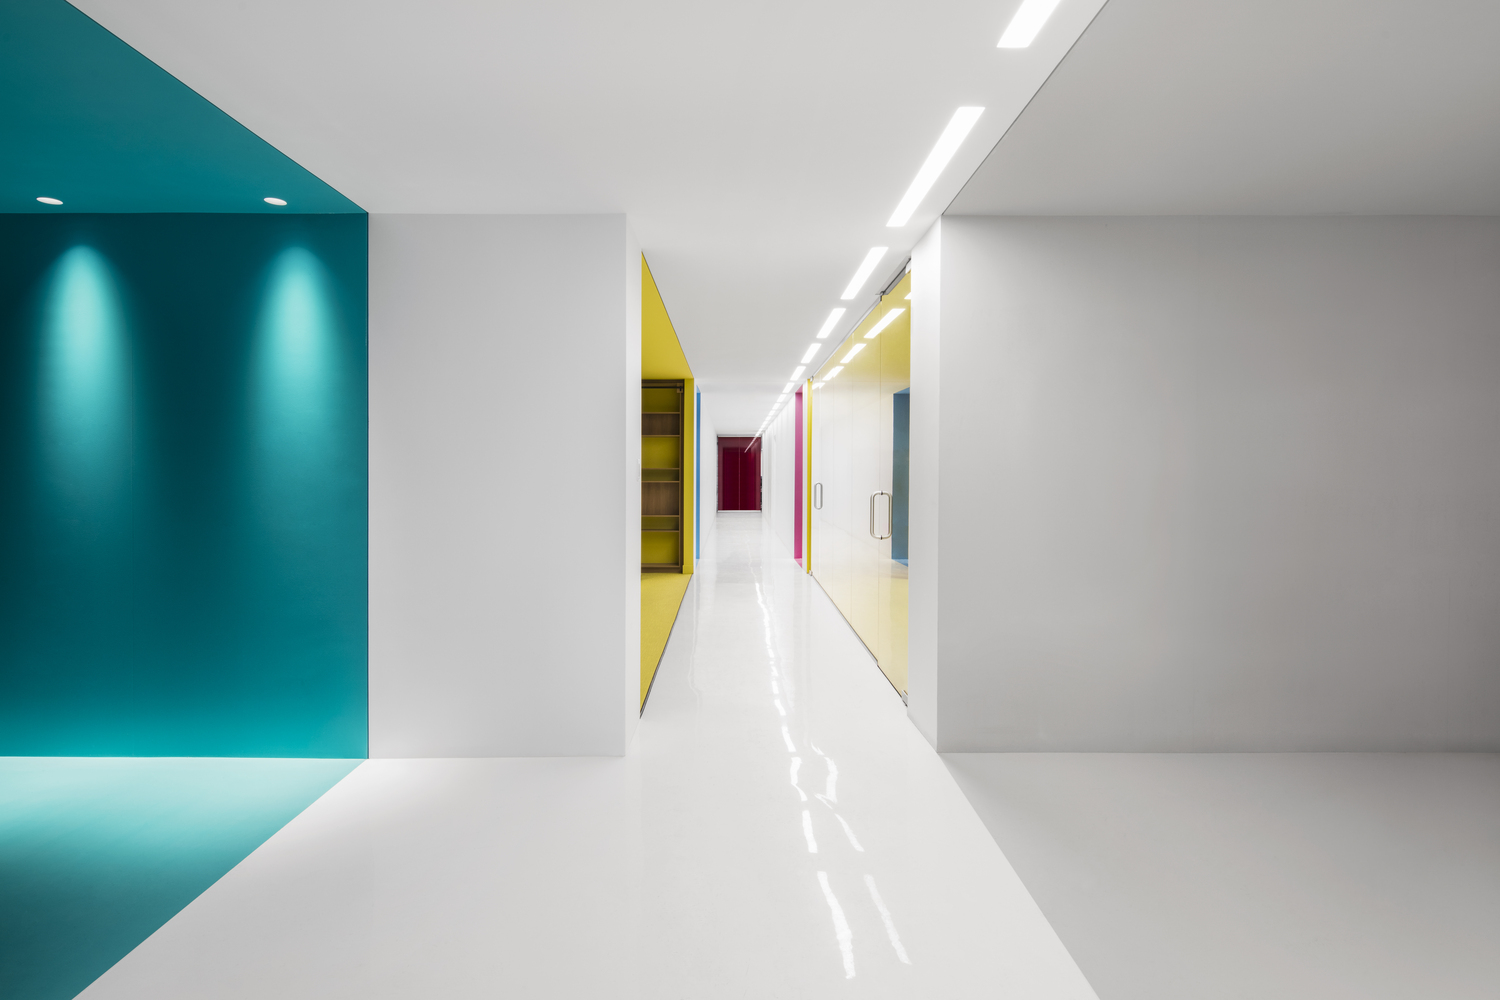 Playster Headquarters by ACDF is All About Vibrant Colors  playster headquarters by acdf Playster Headquarters by ACDF is All About Vibrant Colors Playster Headquarters by ACDF is All About Vibrant Colors 5